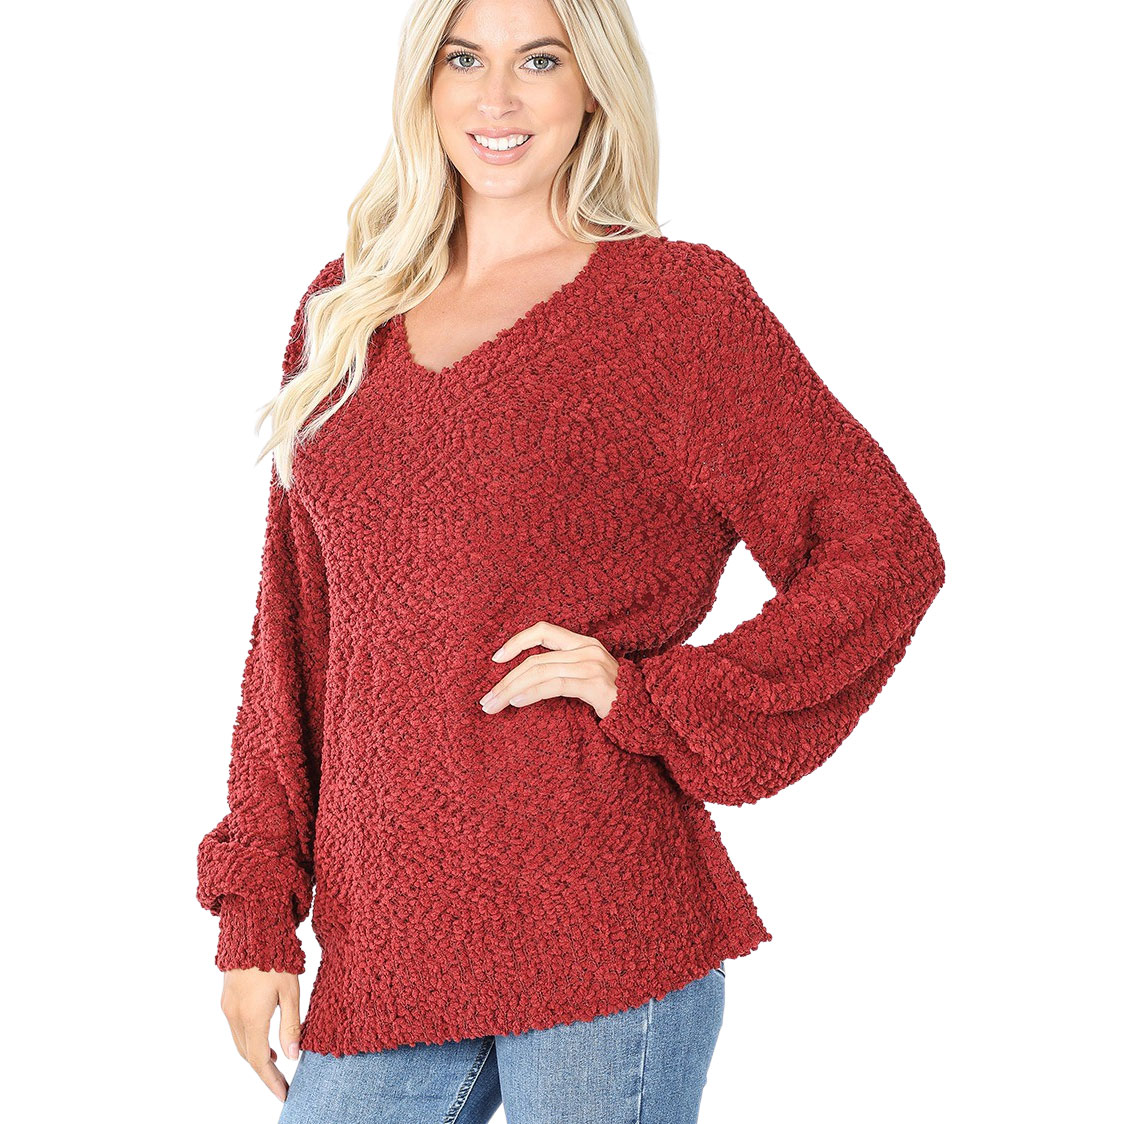 Sweater - Popcorn Balloon Sleeve V-Neck 2736